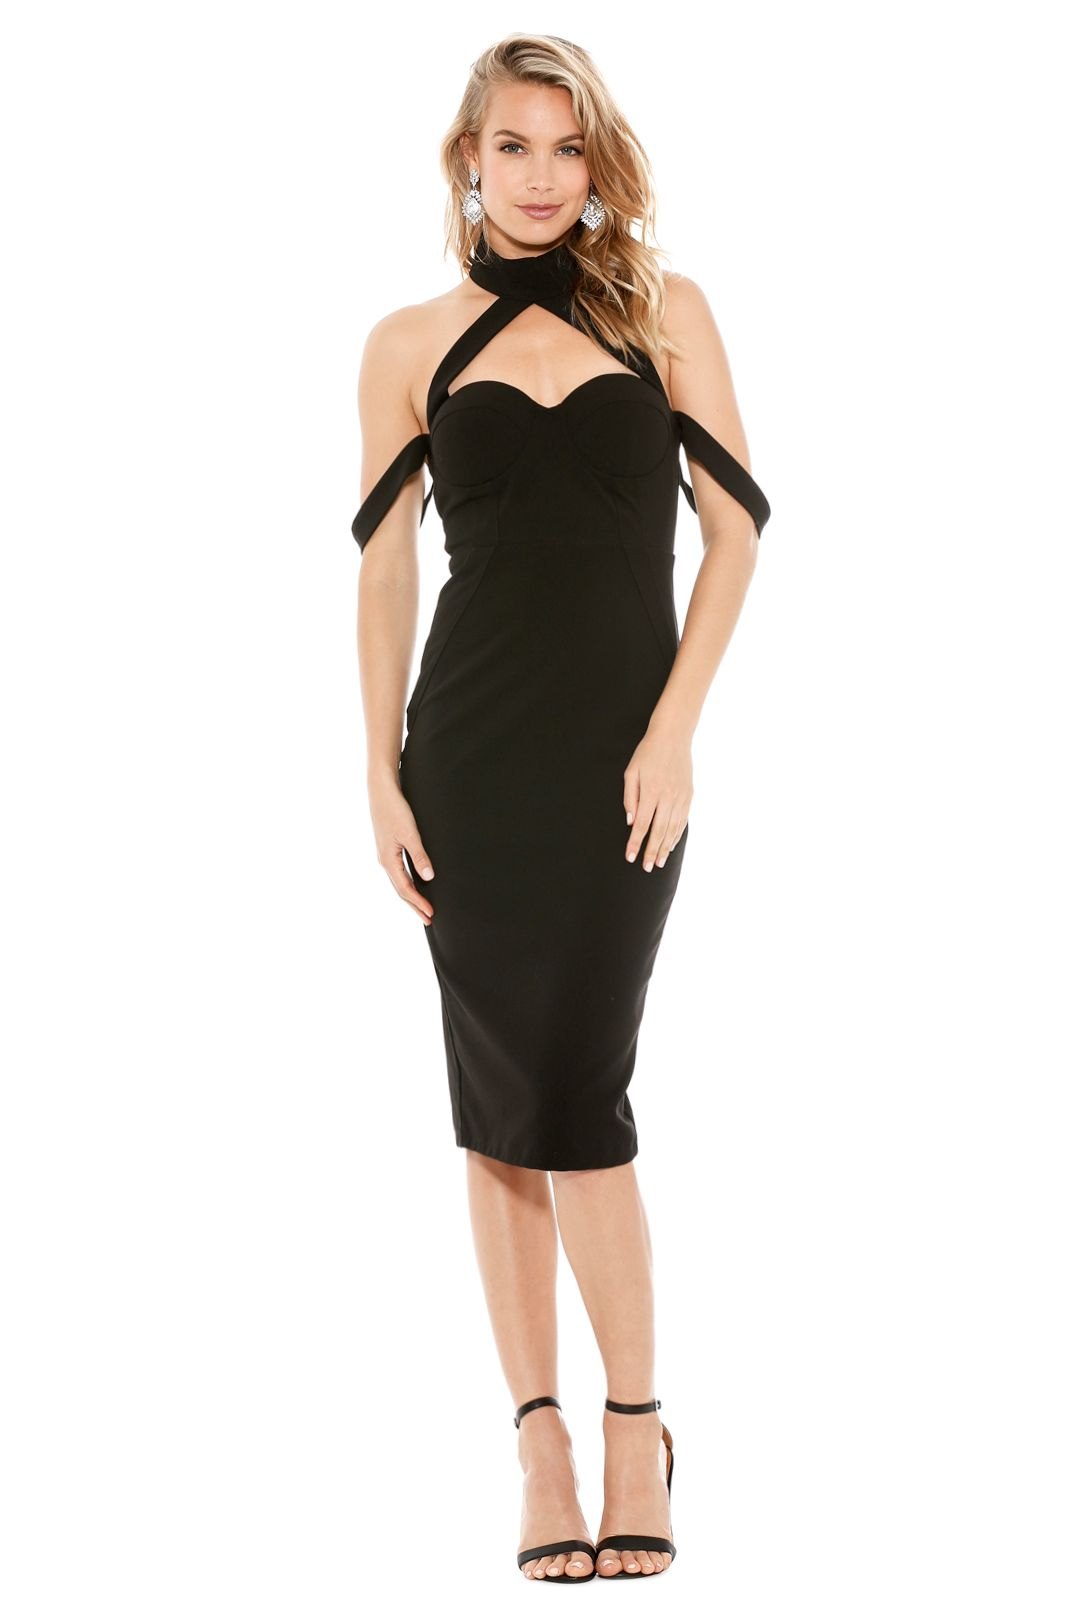 Misha Collection - Claudia Dress - Front - Black